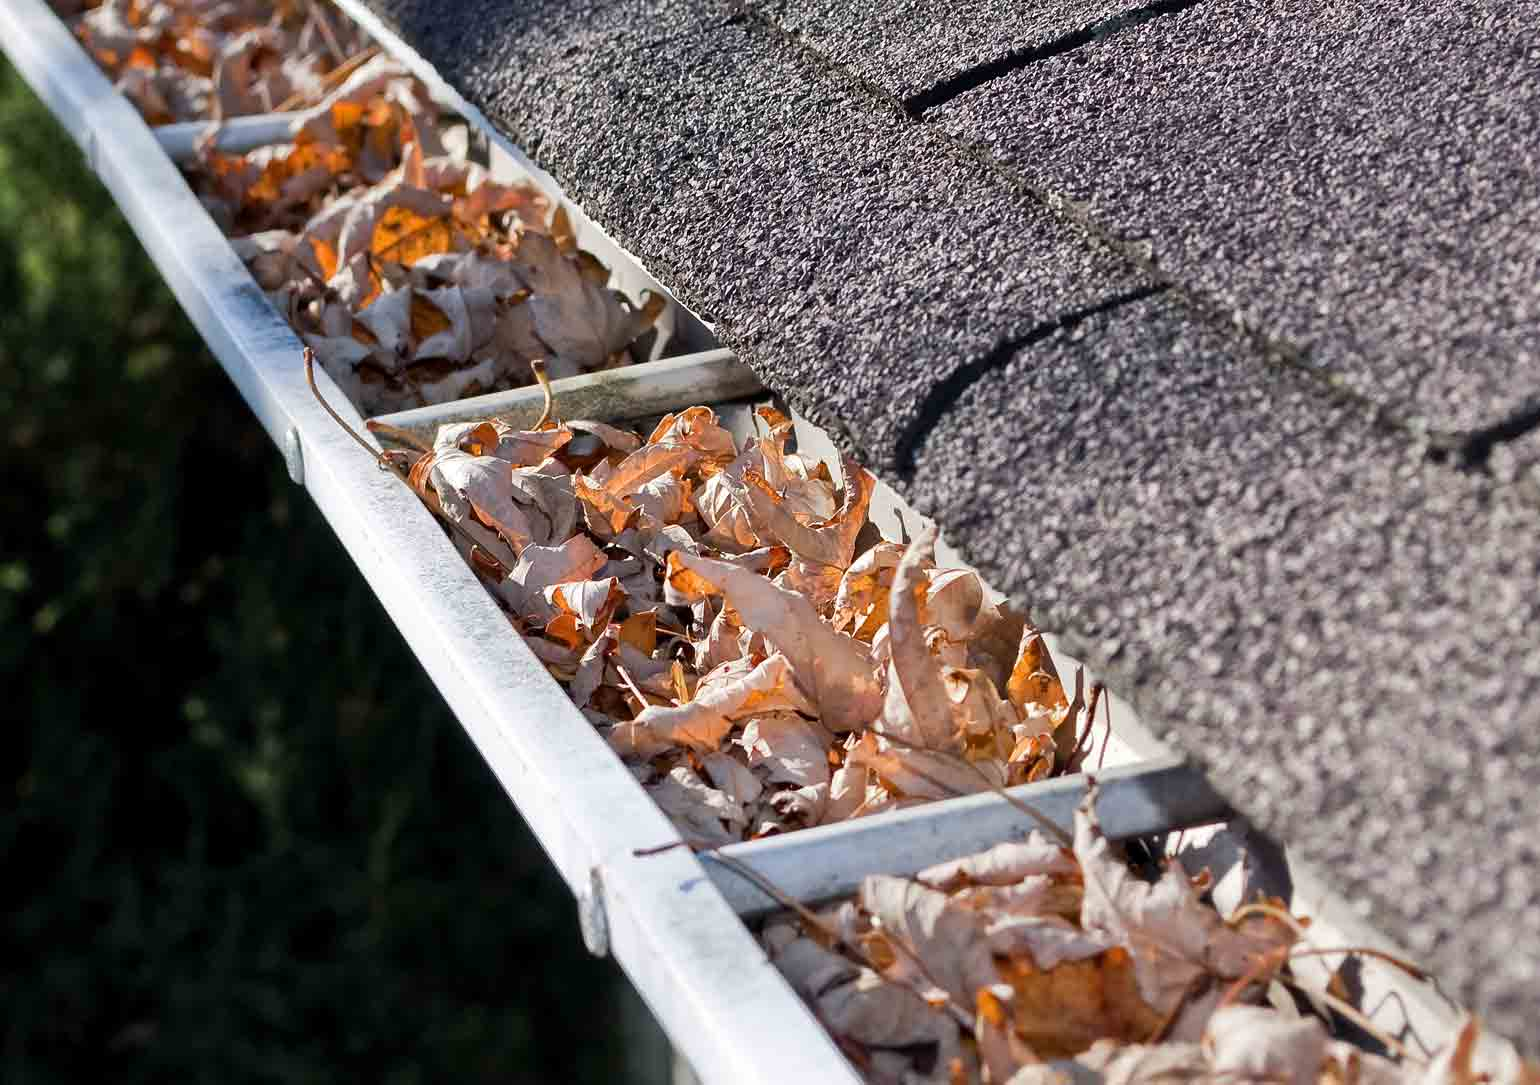 Blocked guttering in an office? Professional Gutter Cleaning services in Northampton